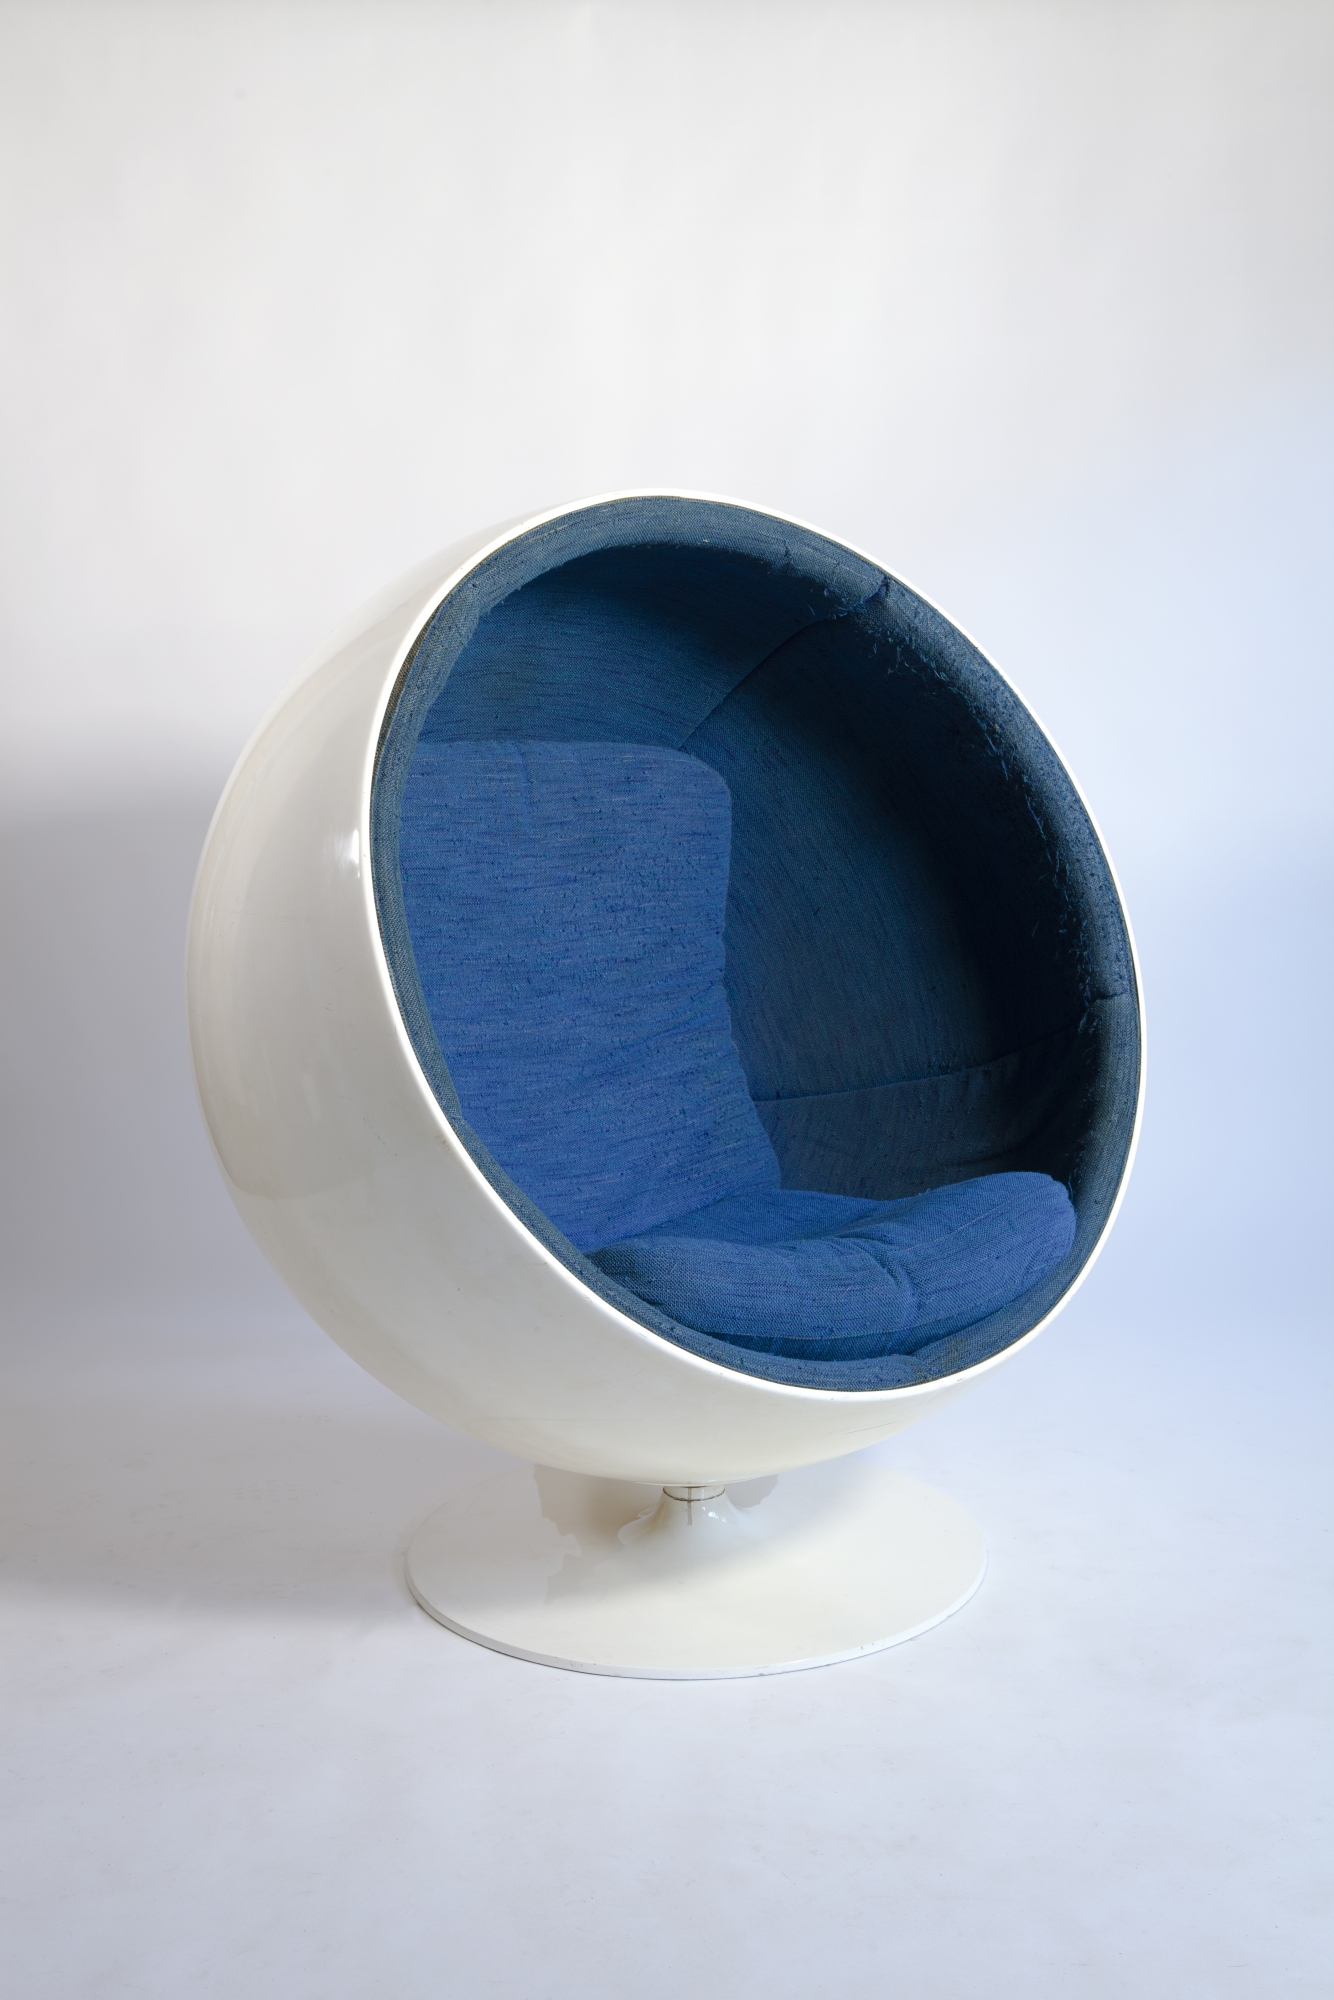 eero aarnio original vintage ball chair adelta design 1963